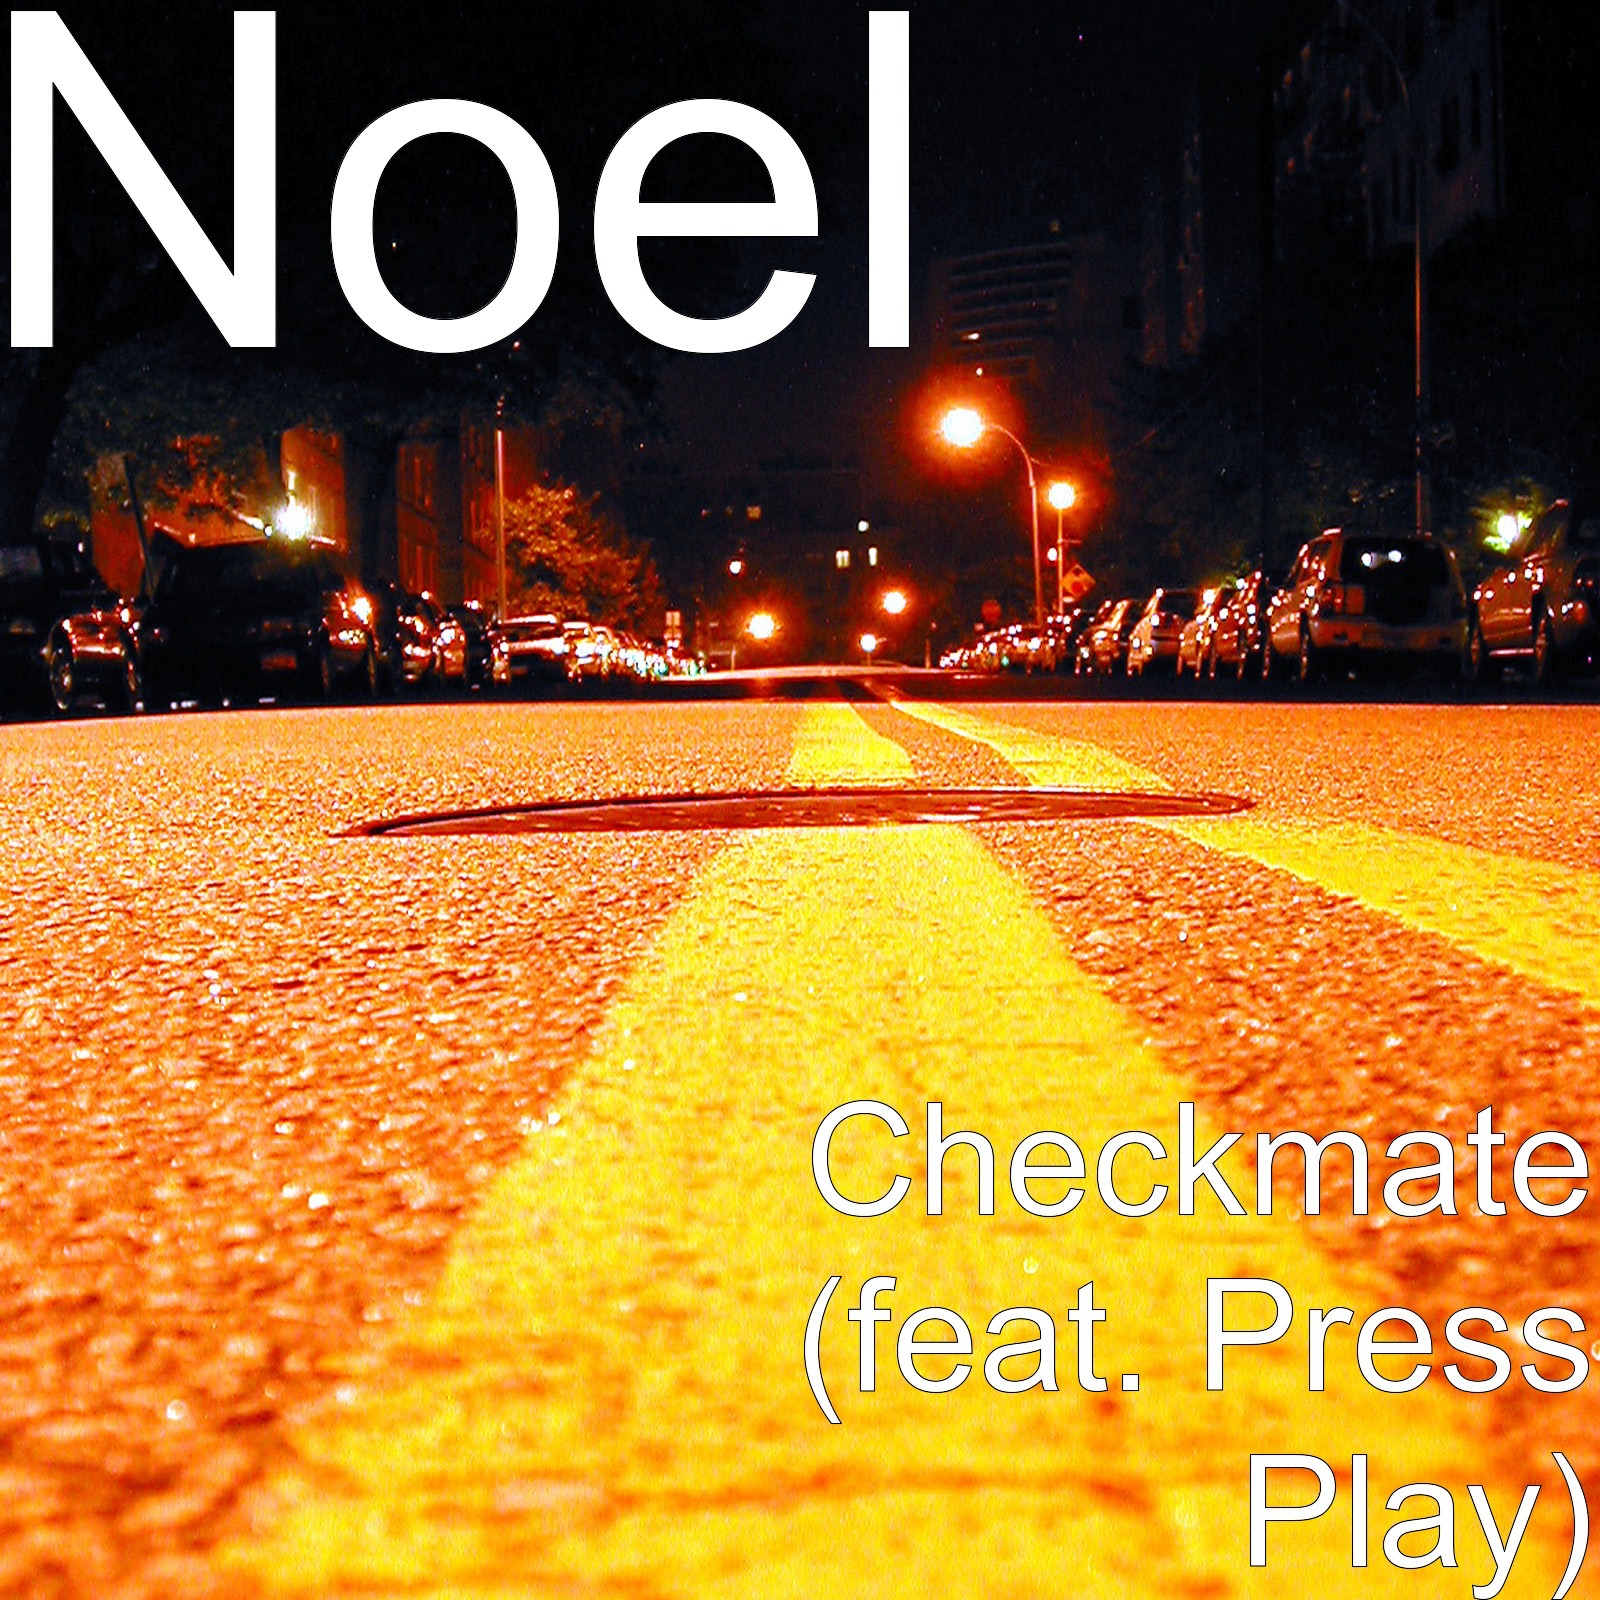 Checkmate (feat. Press Play) - Single